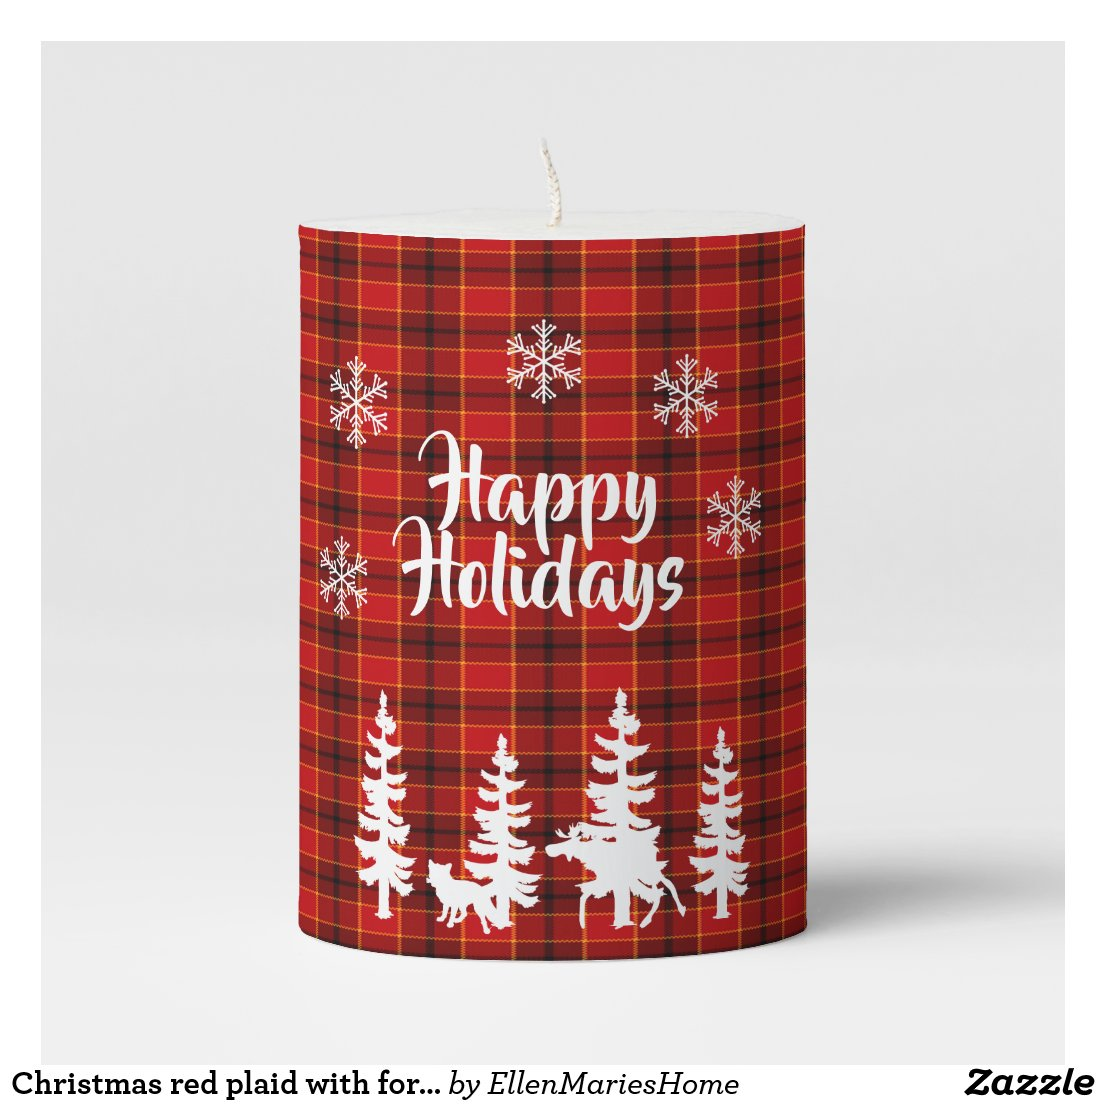 Christmas red plaid with forest animal silhouettes